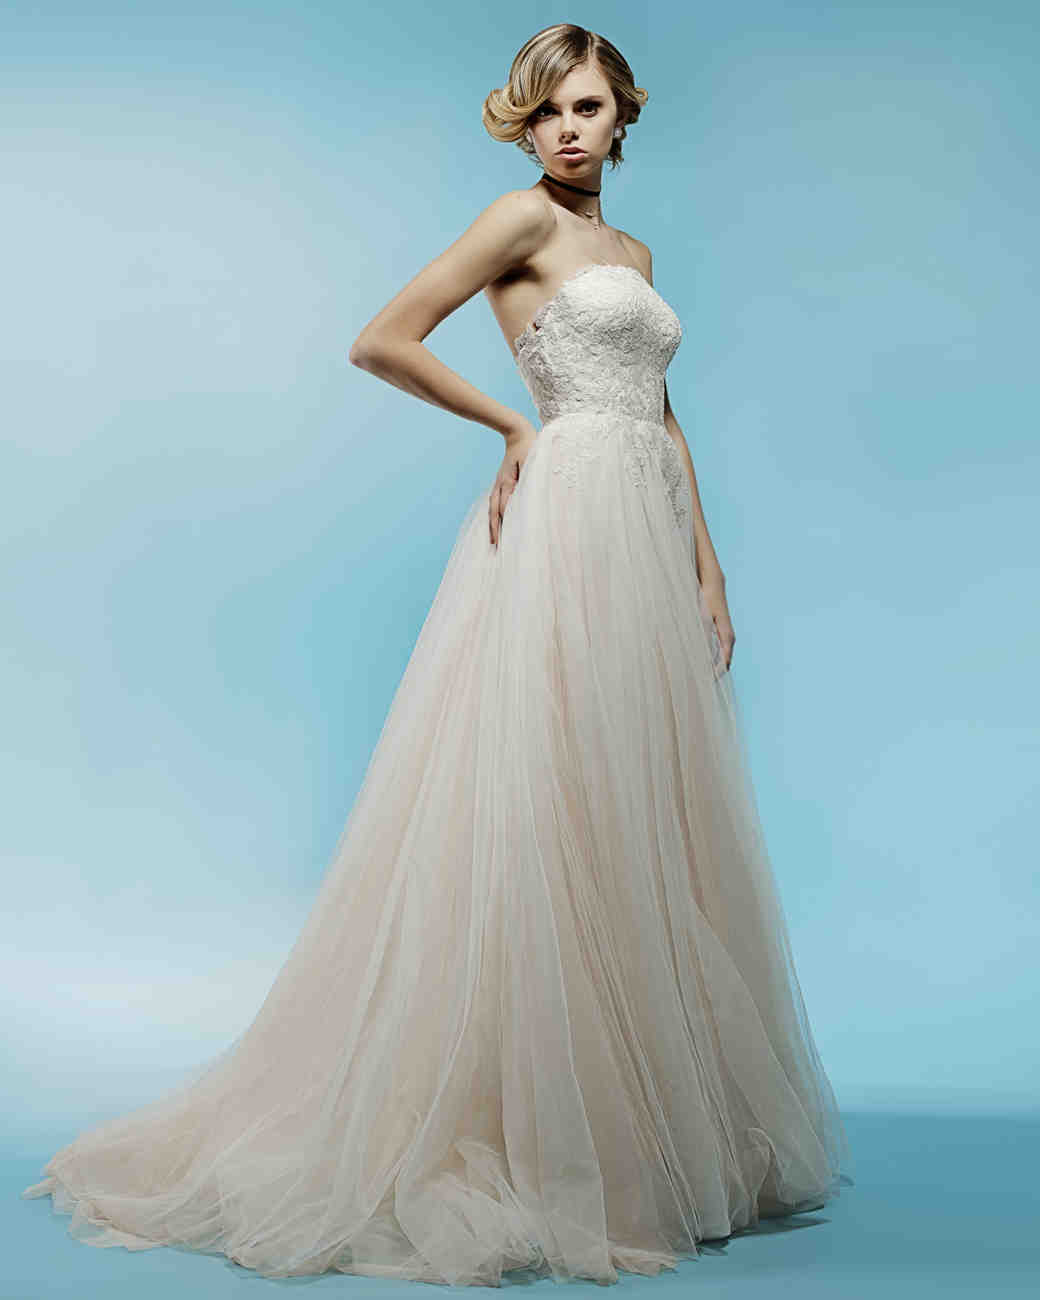 Outstanding Wedding Dresses Banbury Collection - All Wedding Dresses ...